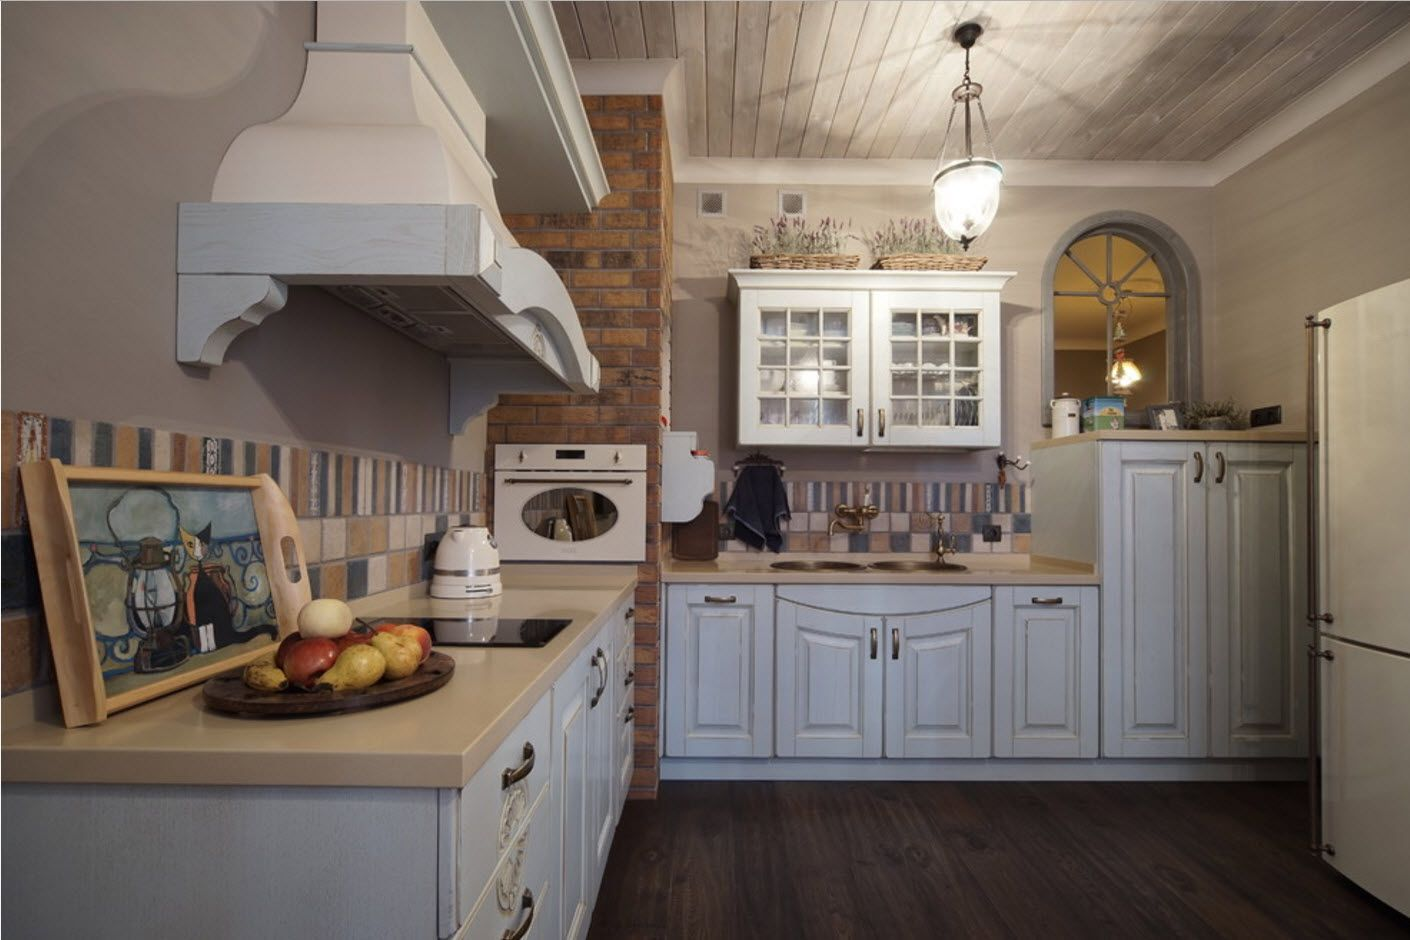 Typical Provence style at the cottage kitchen